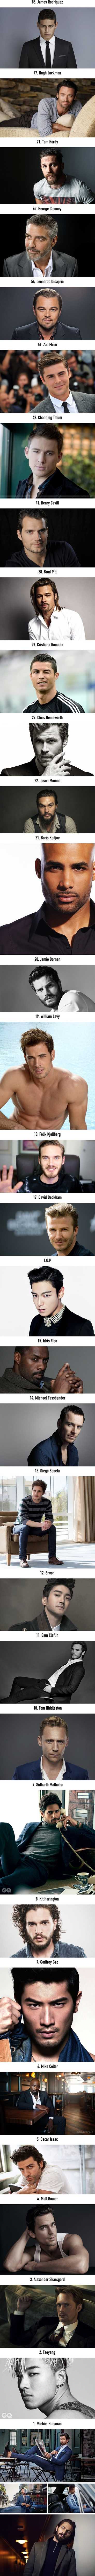 Most handsome faces of 2016